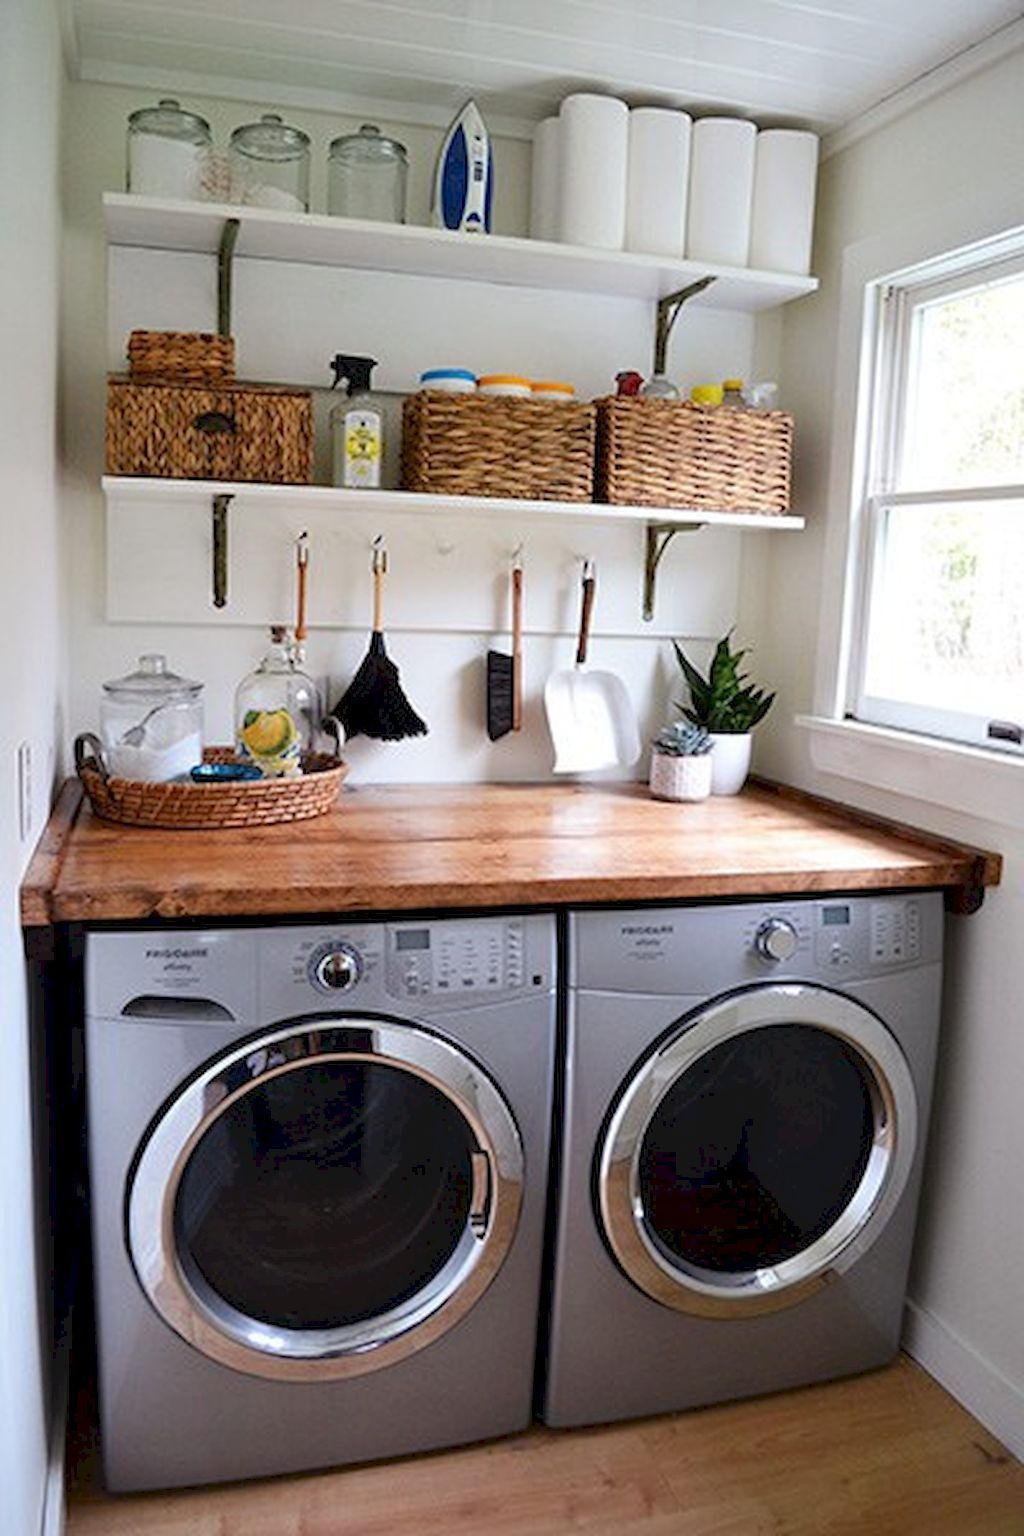 space fresh stunning small laundry gallery ikea ideas utility room accessories the for awesome drying storage rack of